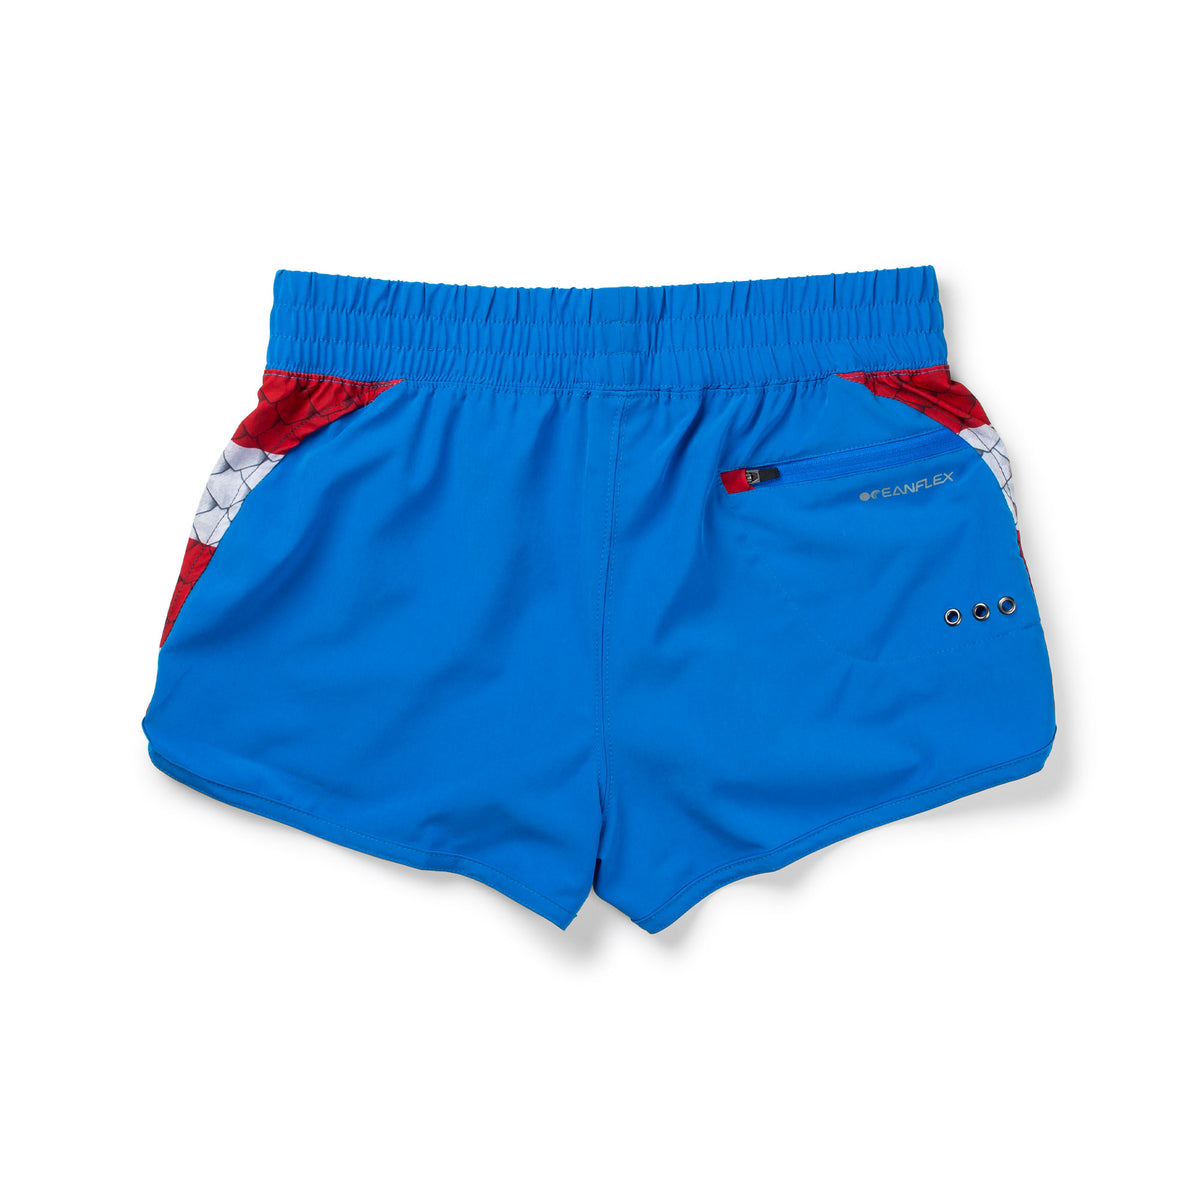 Catalina Hybrid Fishing Shorts Big Image - 2